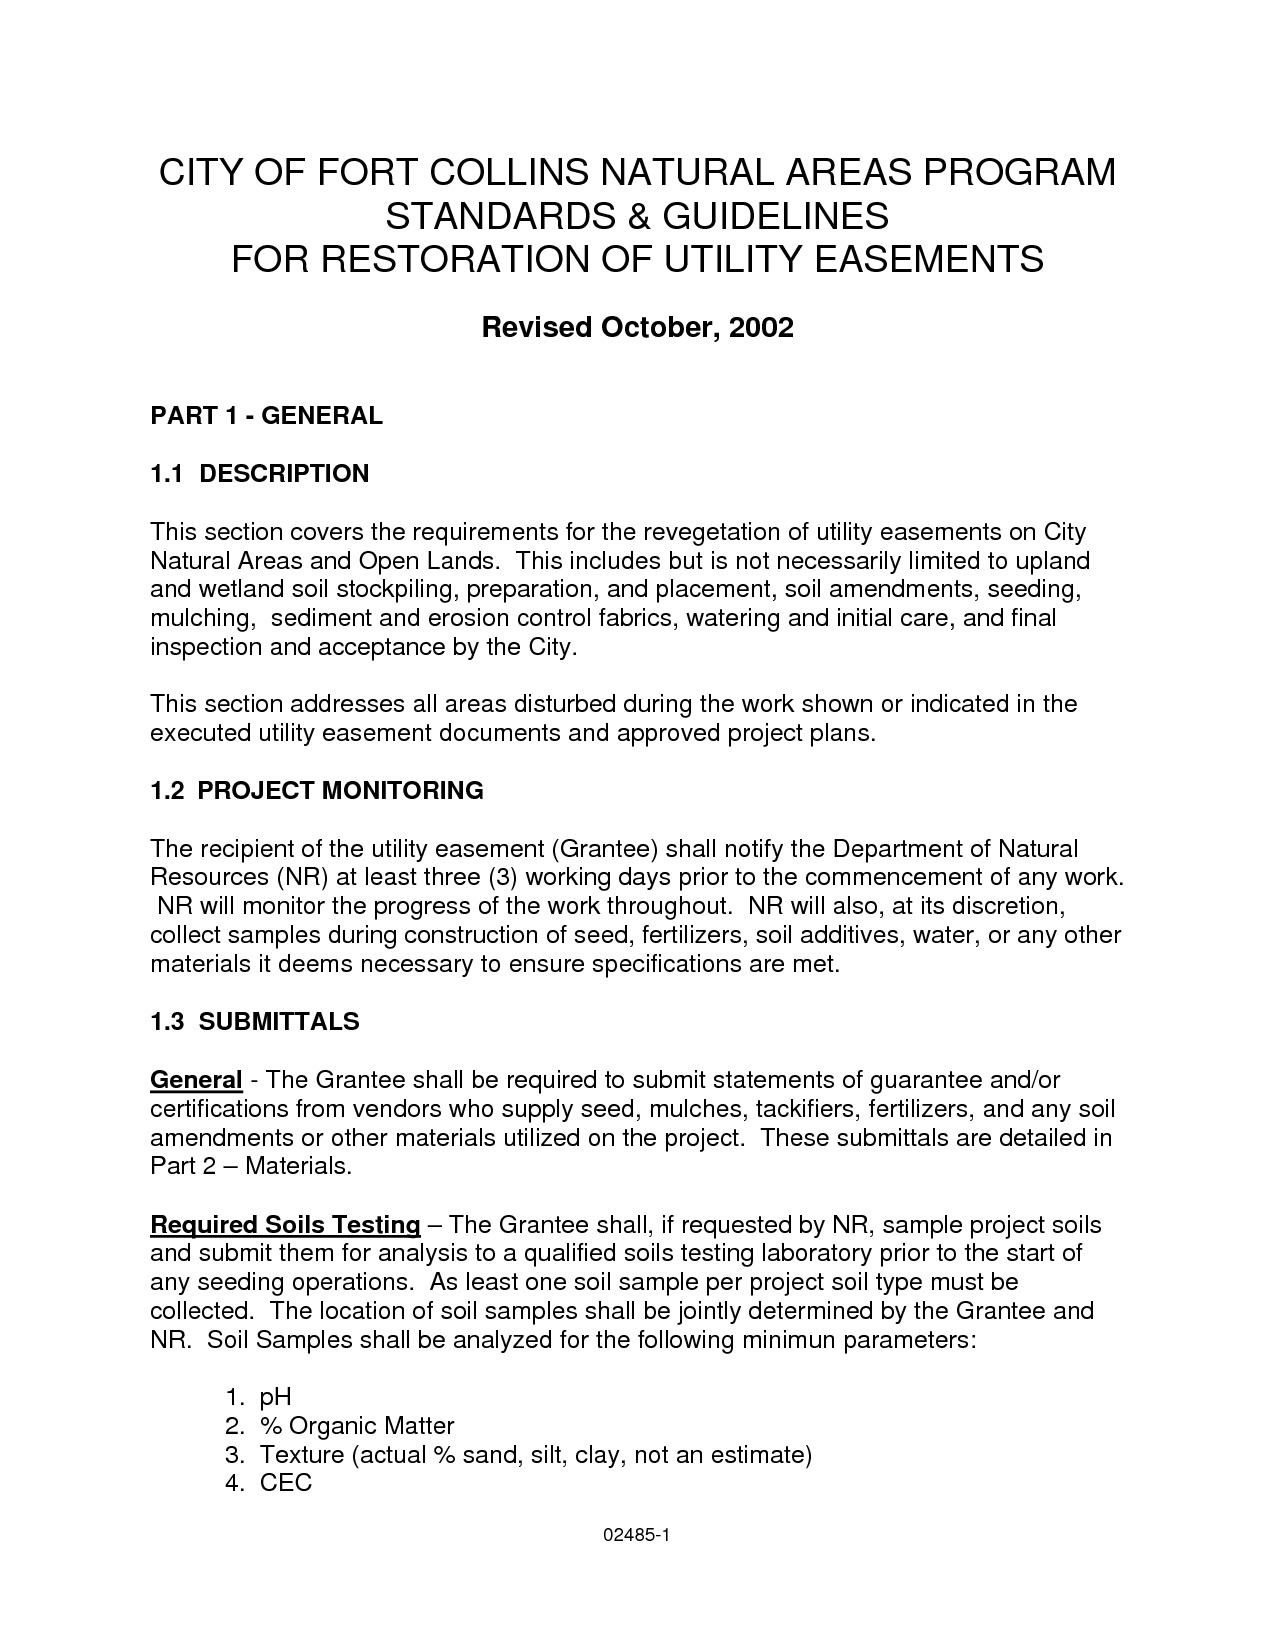 Road and Utility Easement Letter of Agreement Sample - PDF by ...